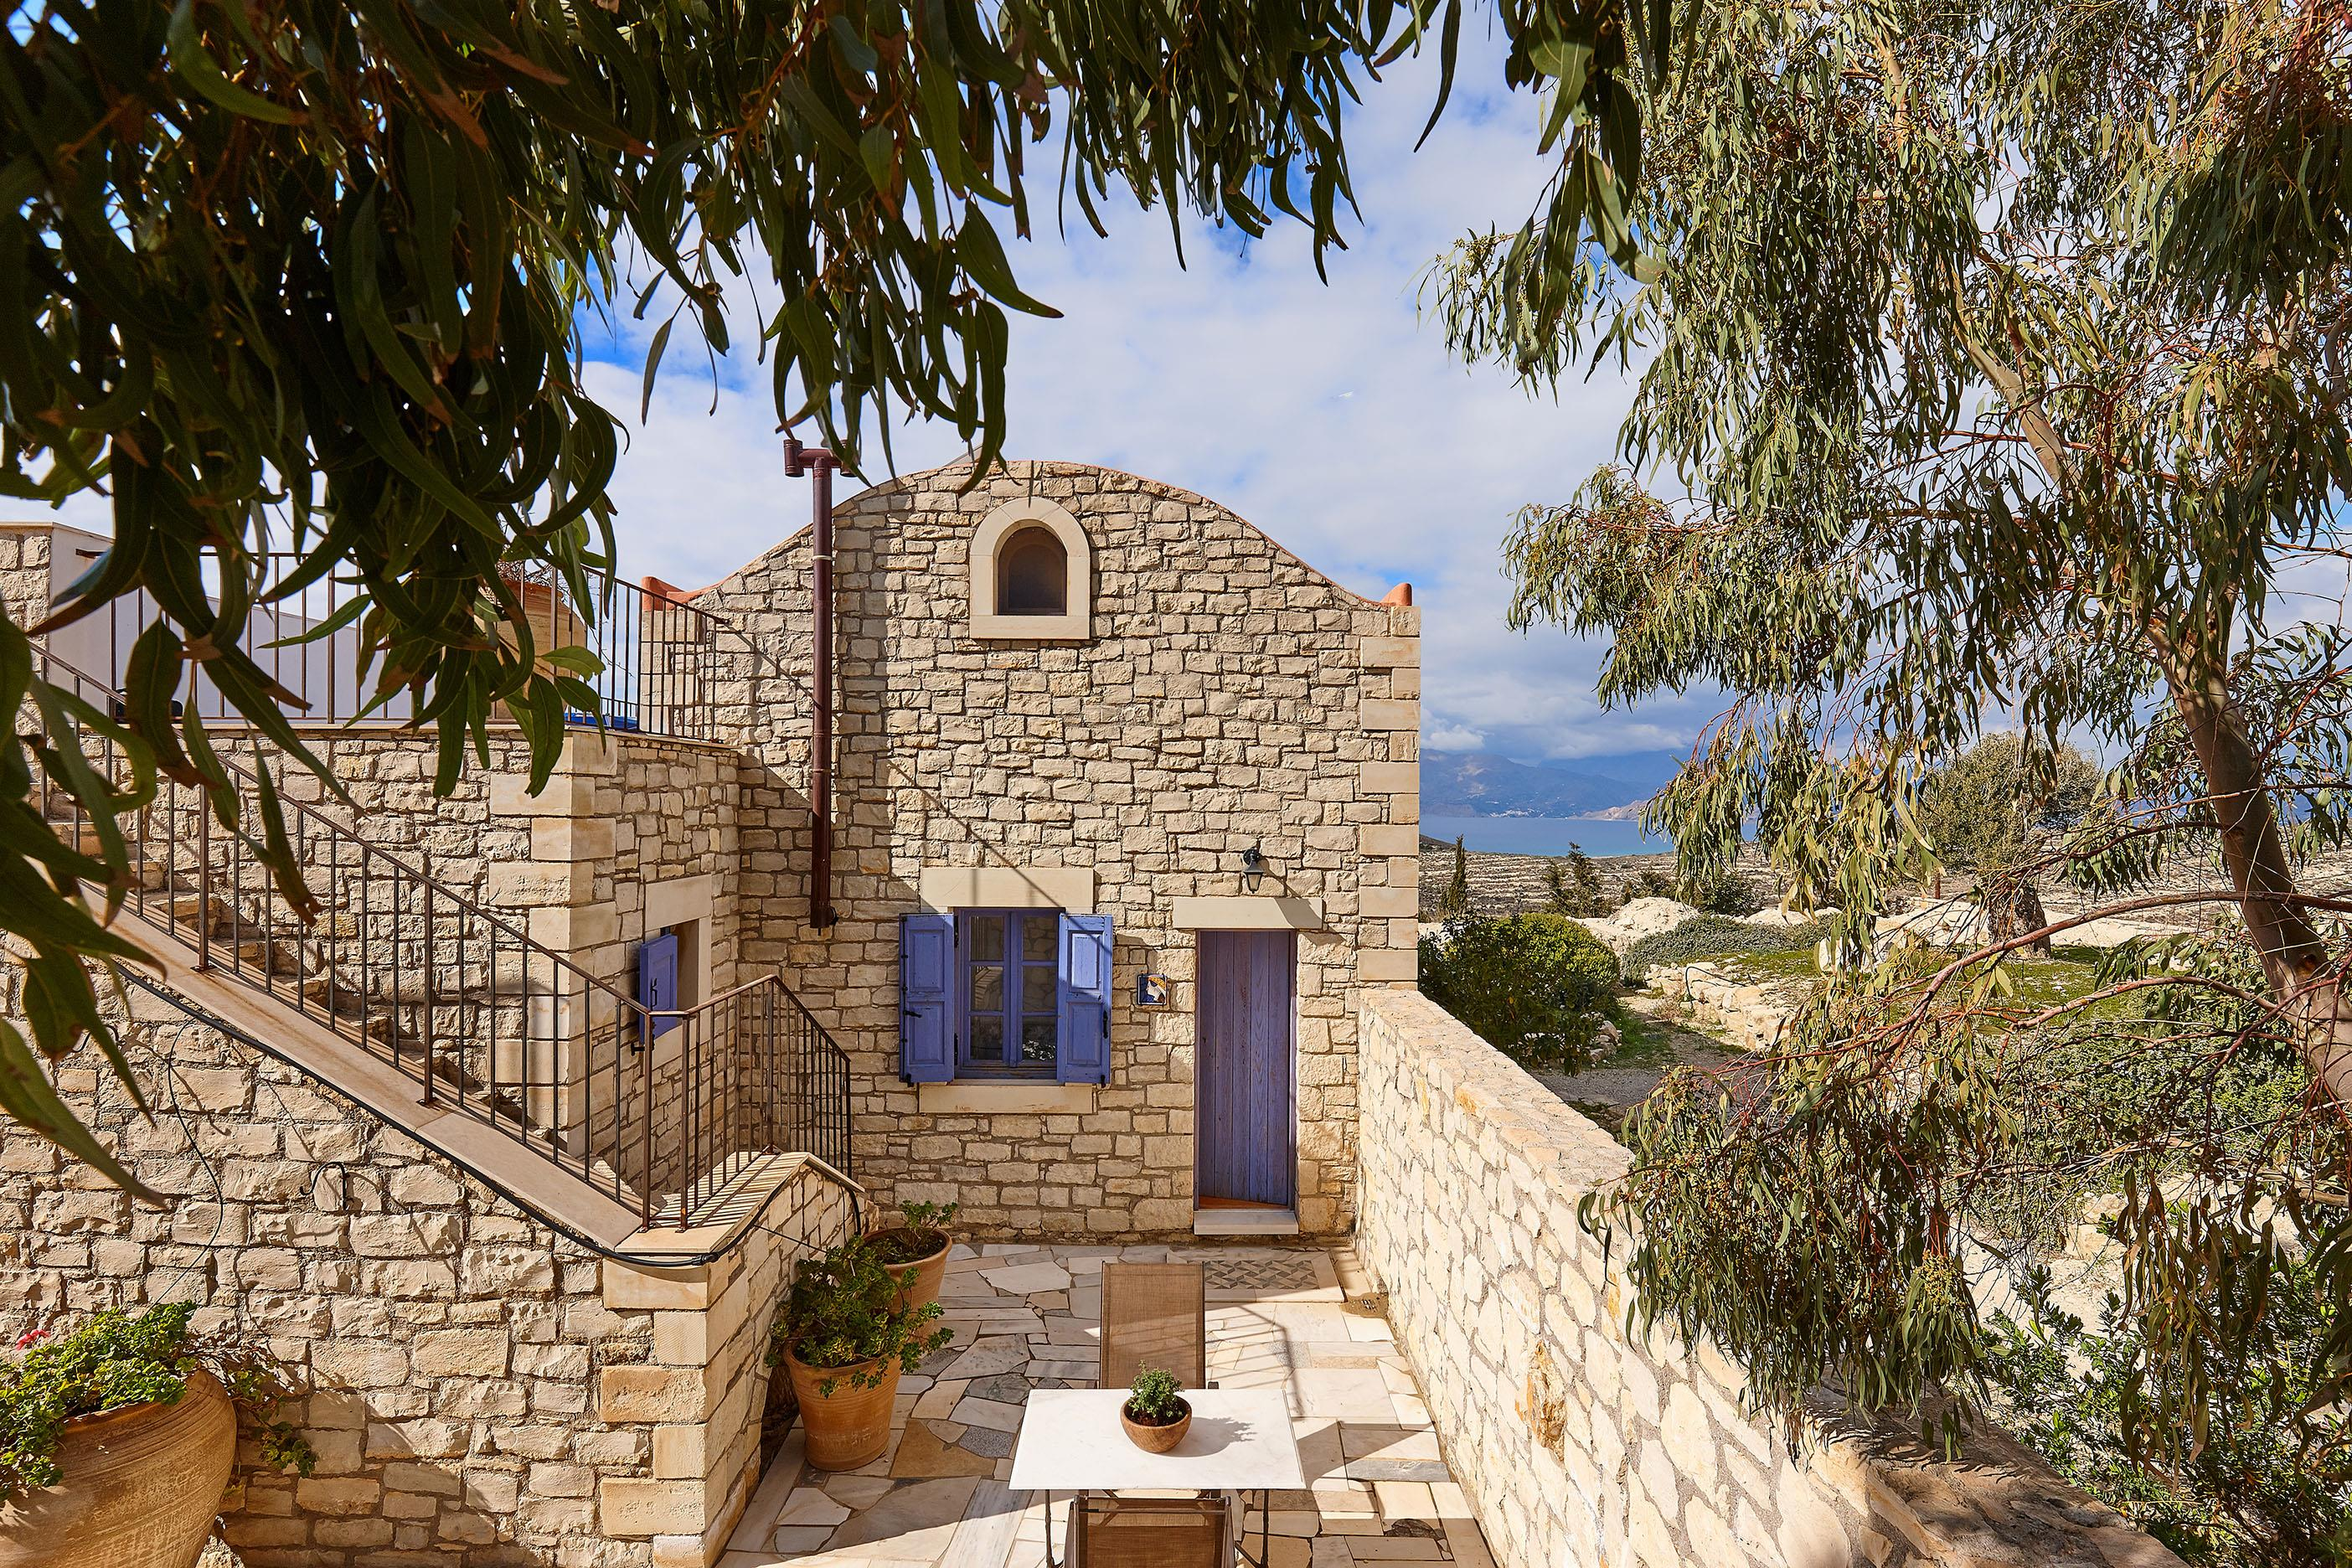 Orelia Cretan Villas in Crete: village kamilari crete, south crete ...